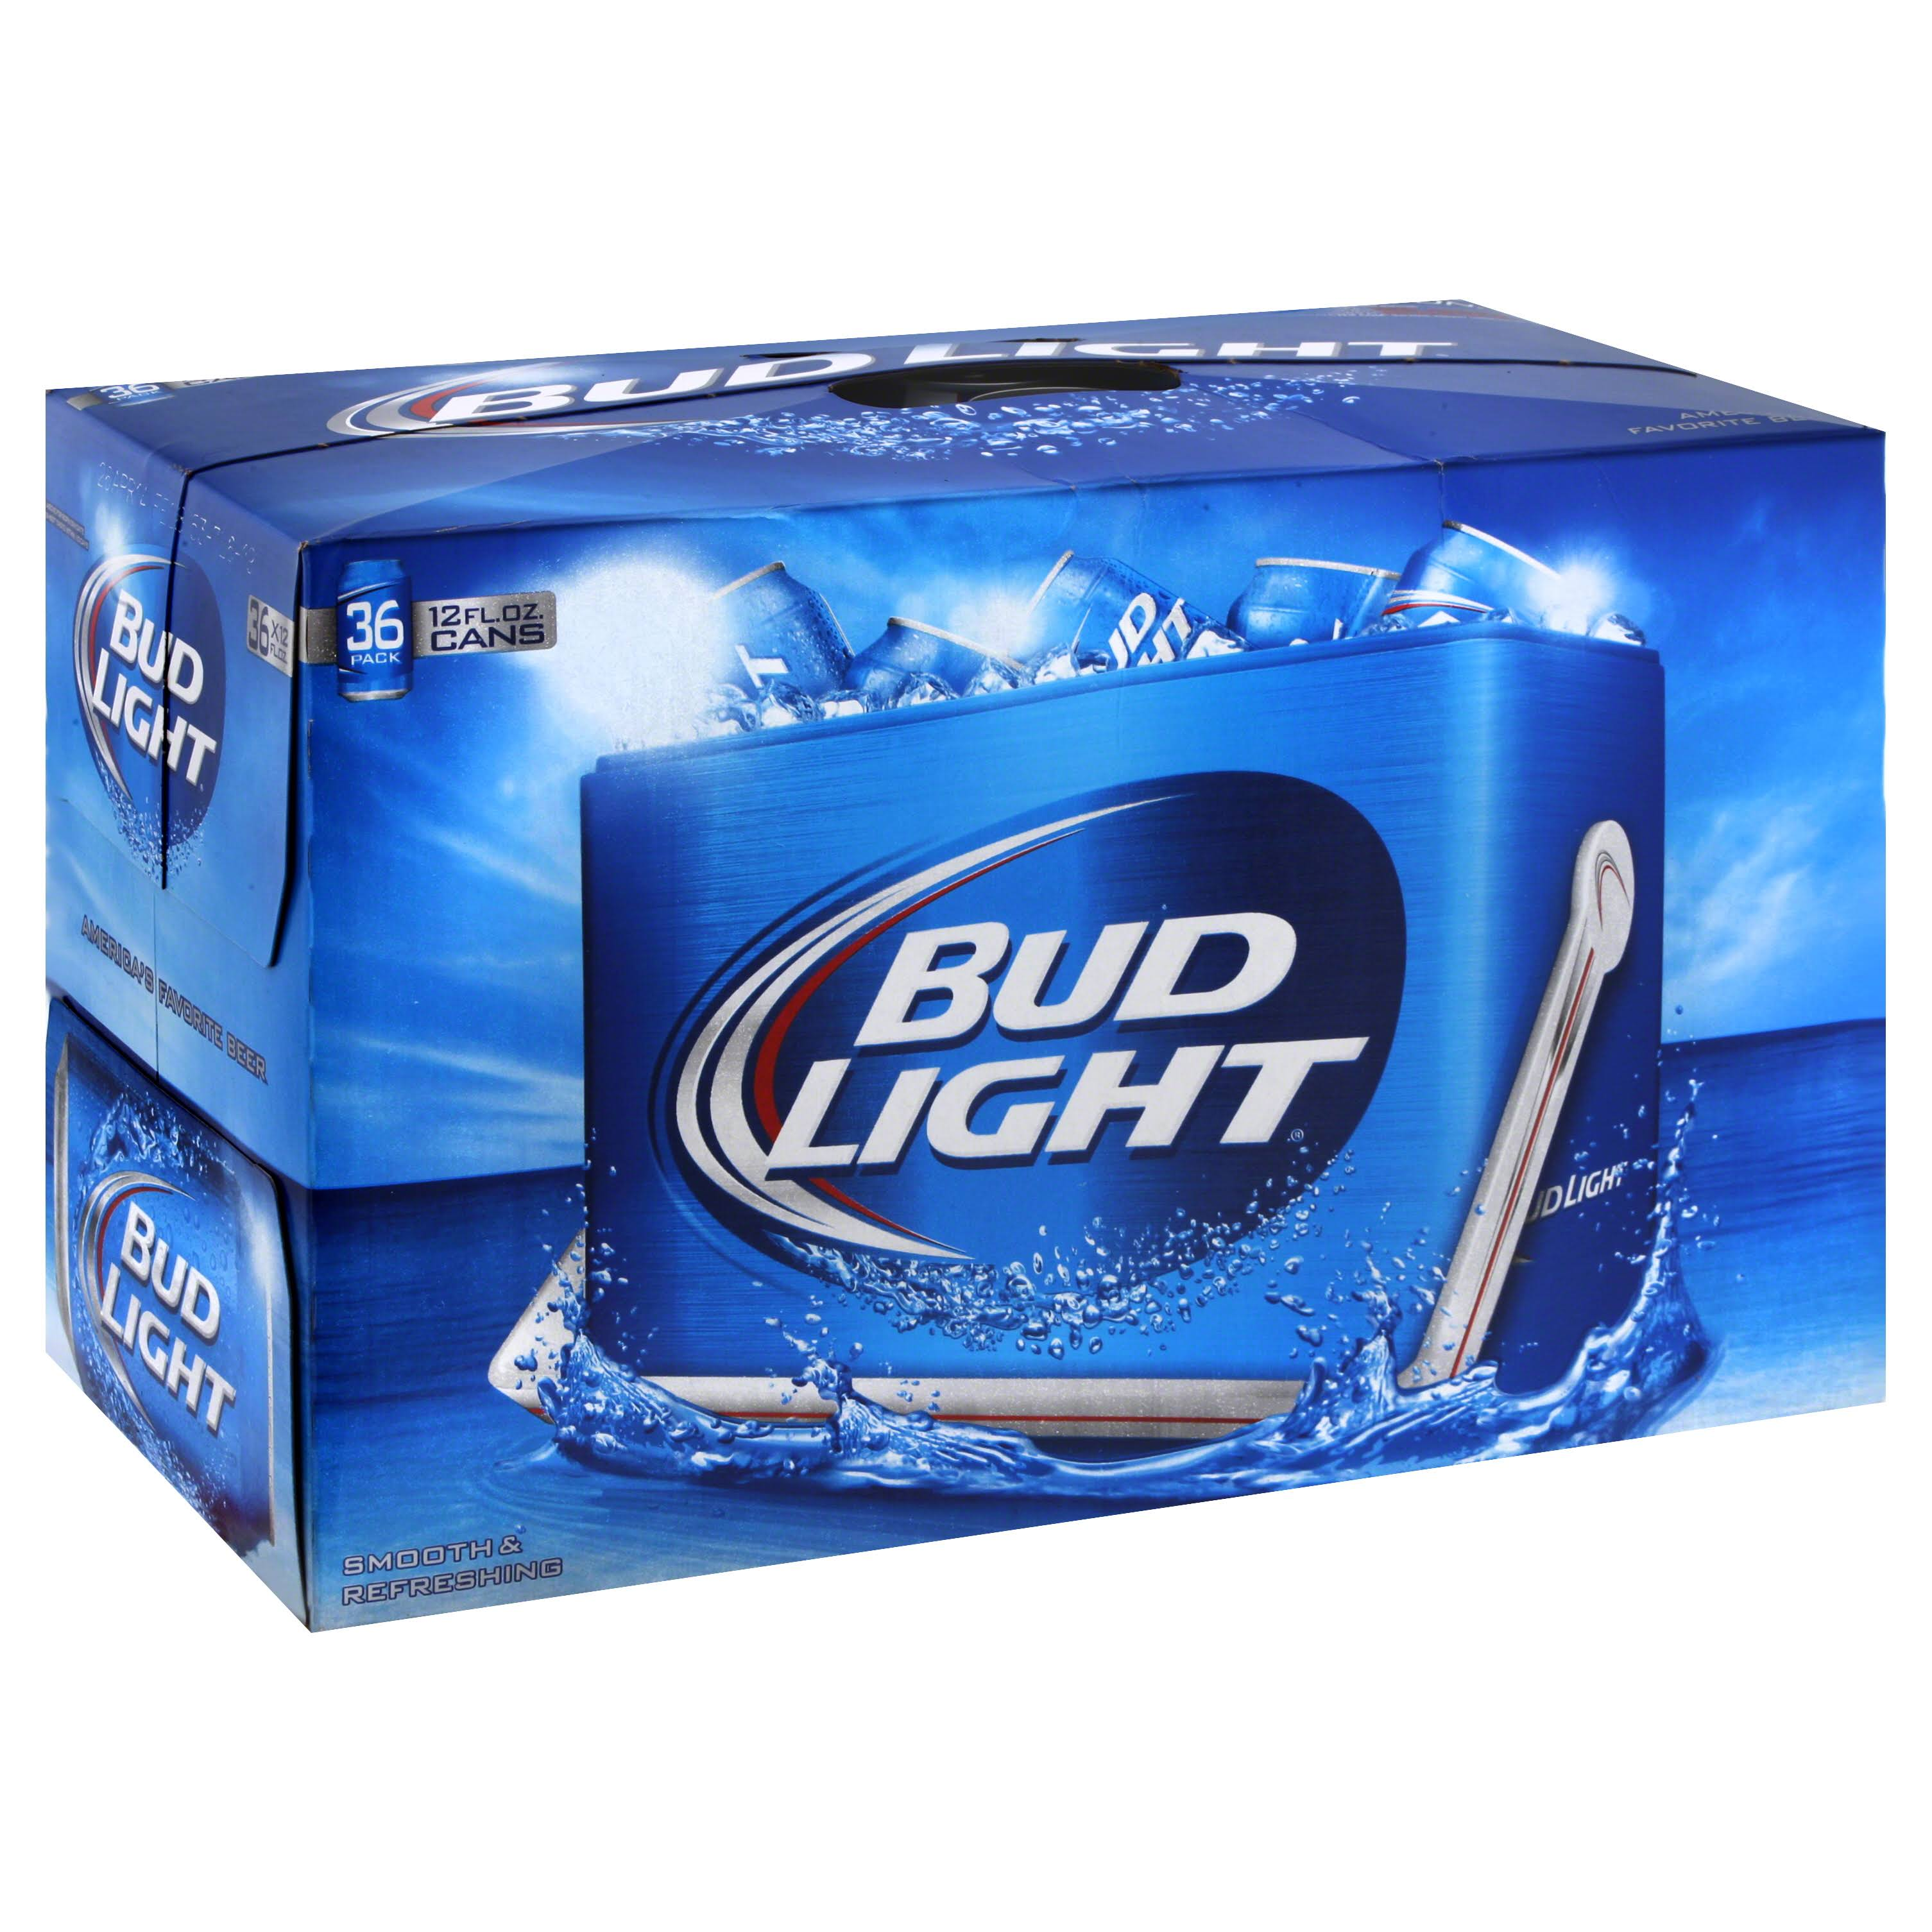 Bud Light Beer - 36 Cans